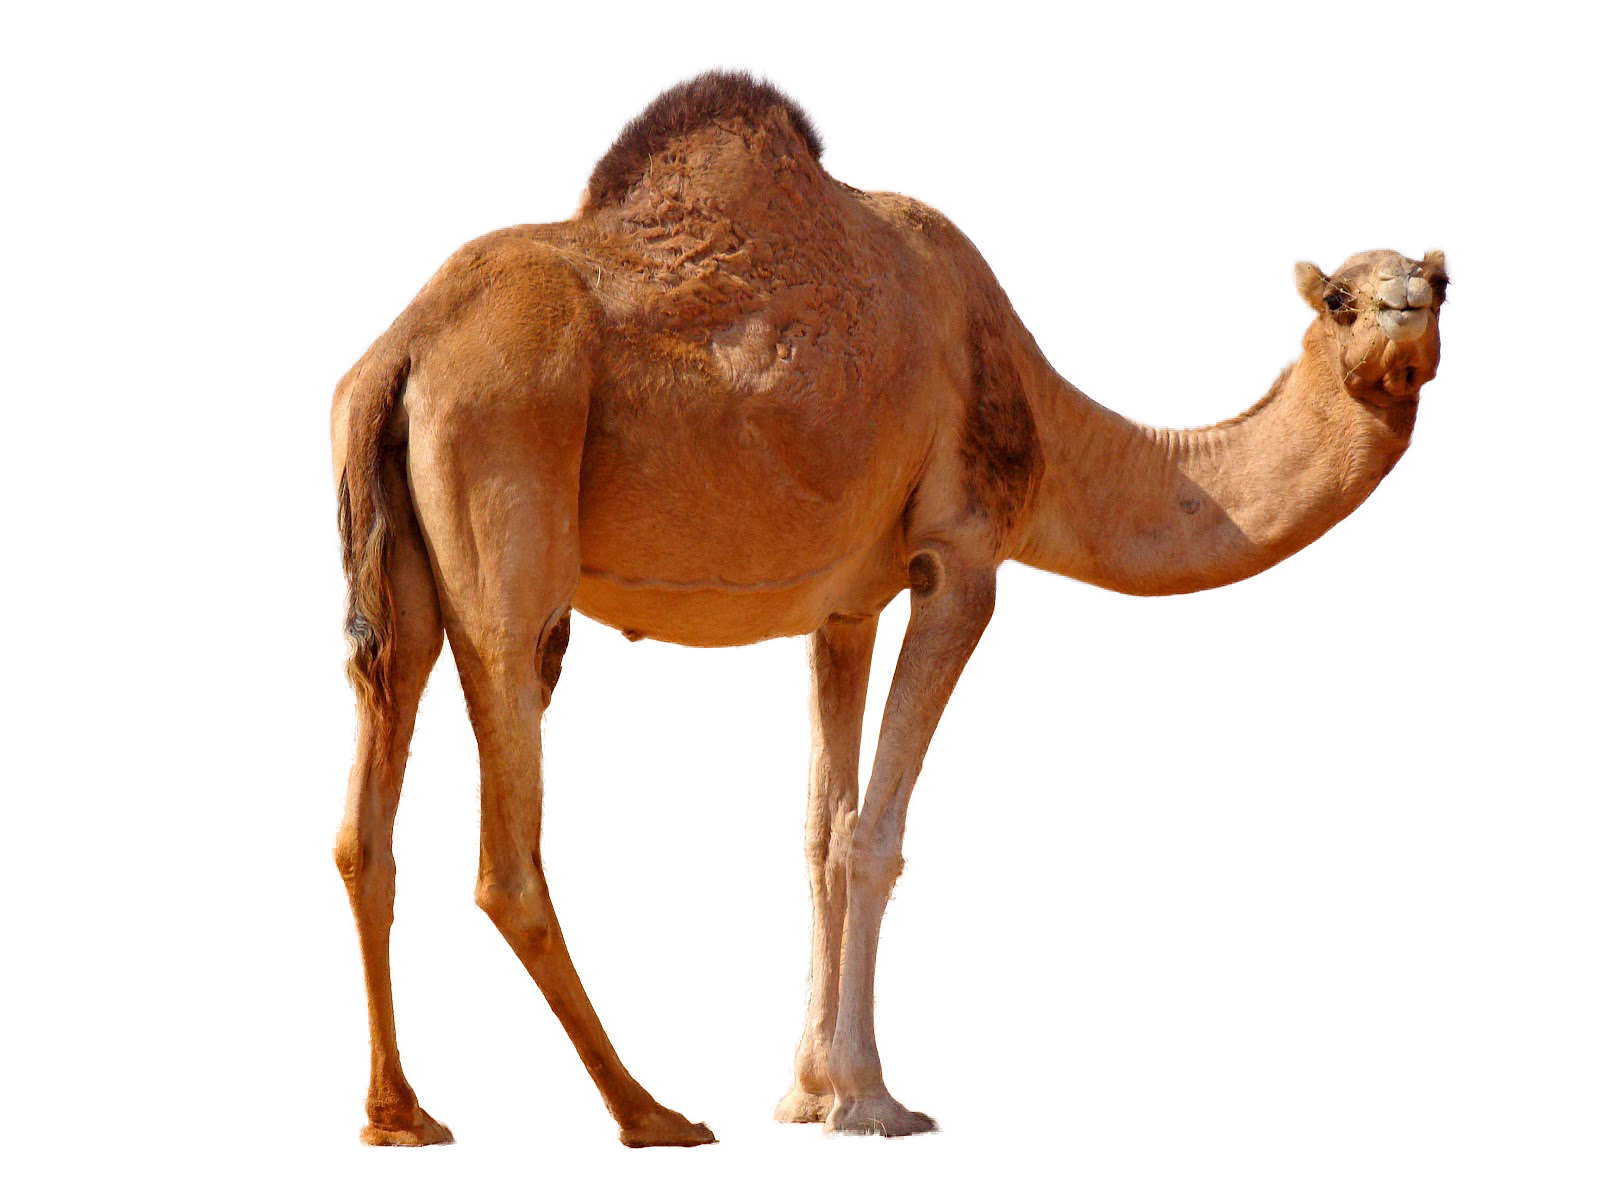 camel png image collection for download crazypng #21377